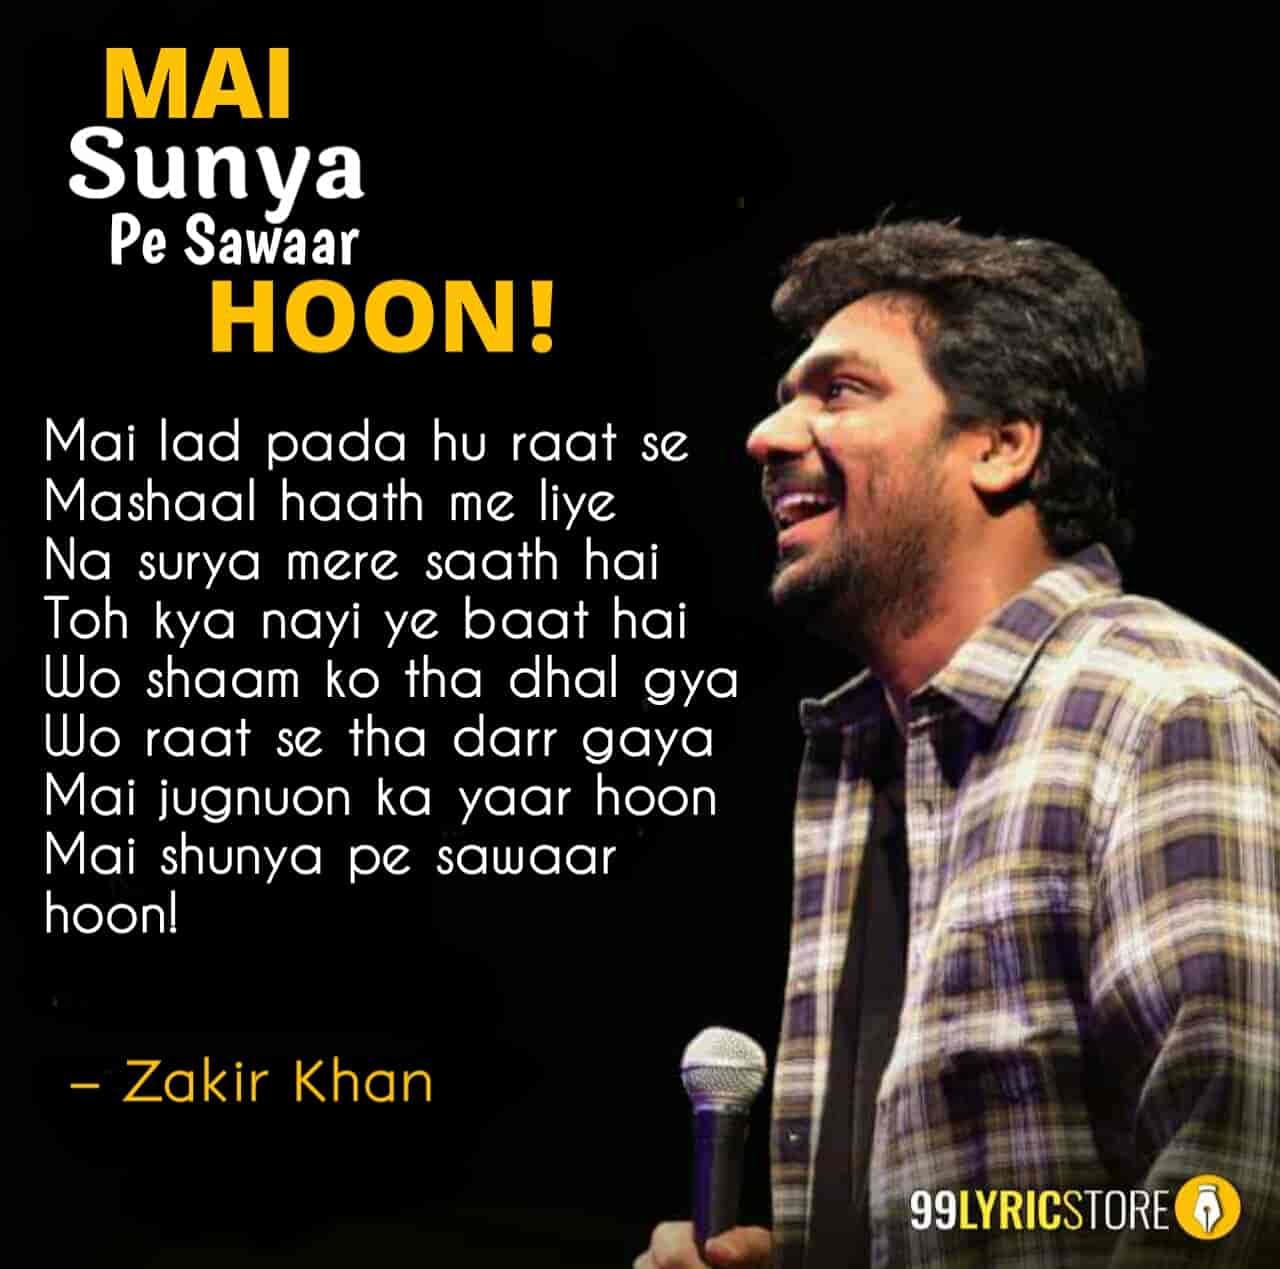 This beautiful poem 'Mai Shunya Pe Sawaar Hoon' which is written and performed by Zakir Khan.